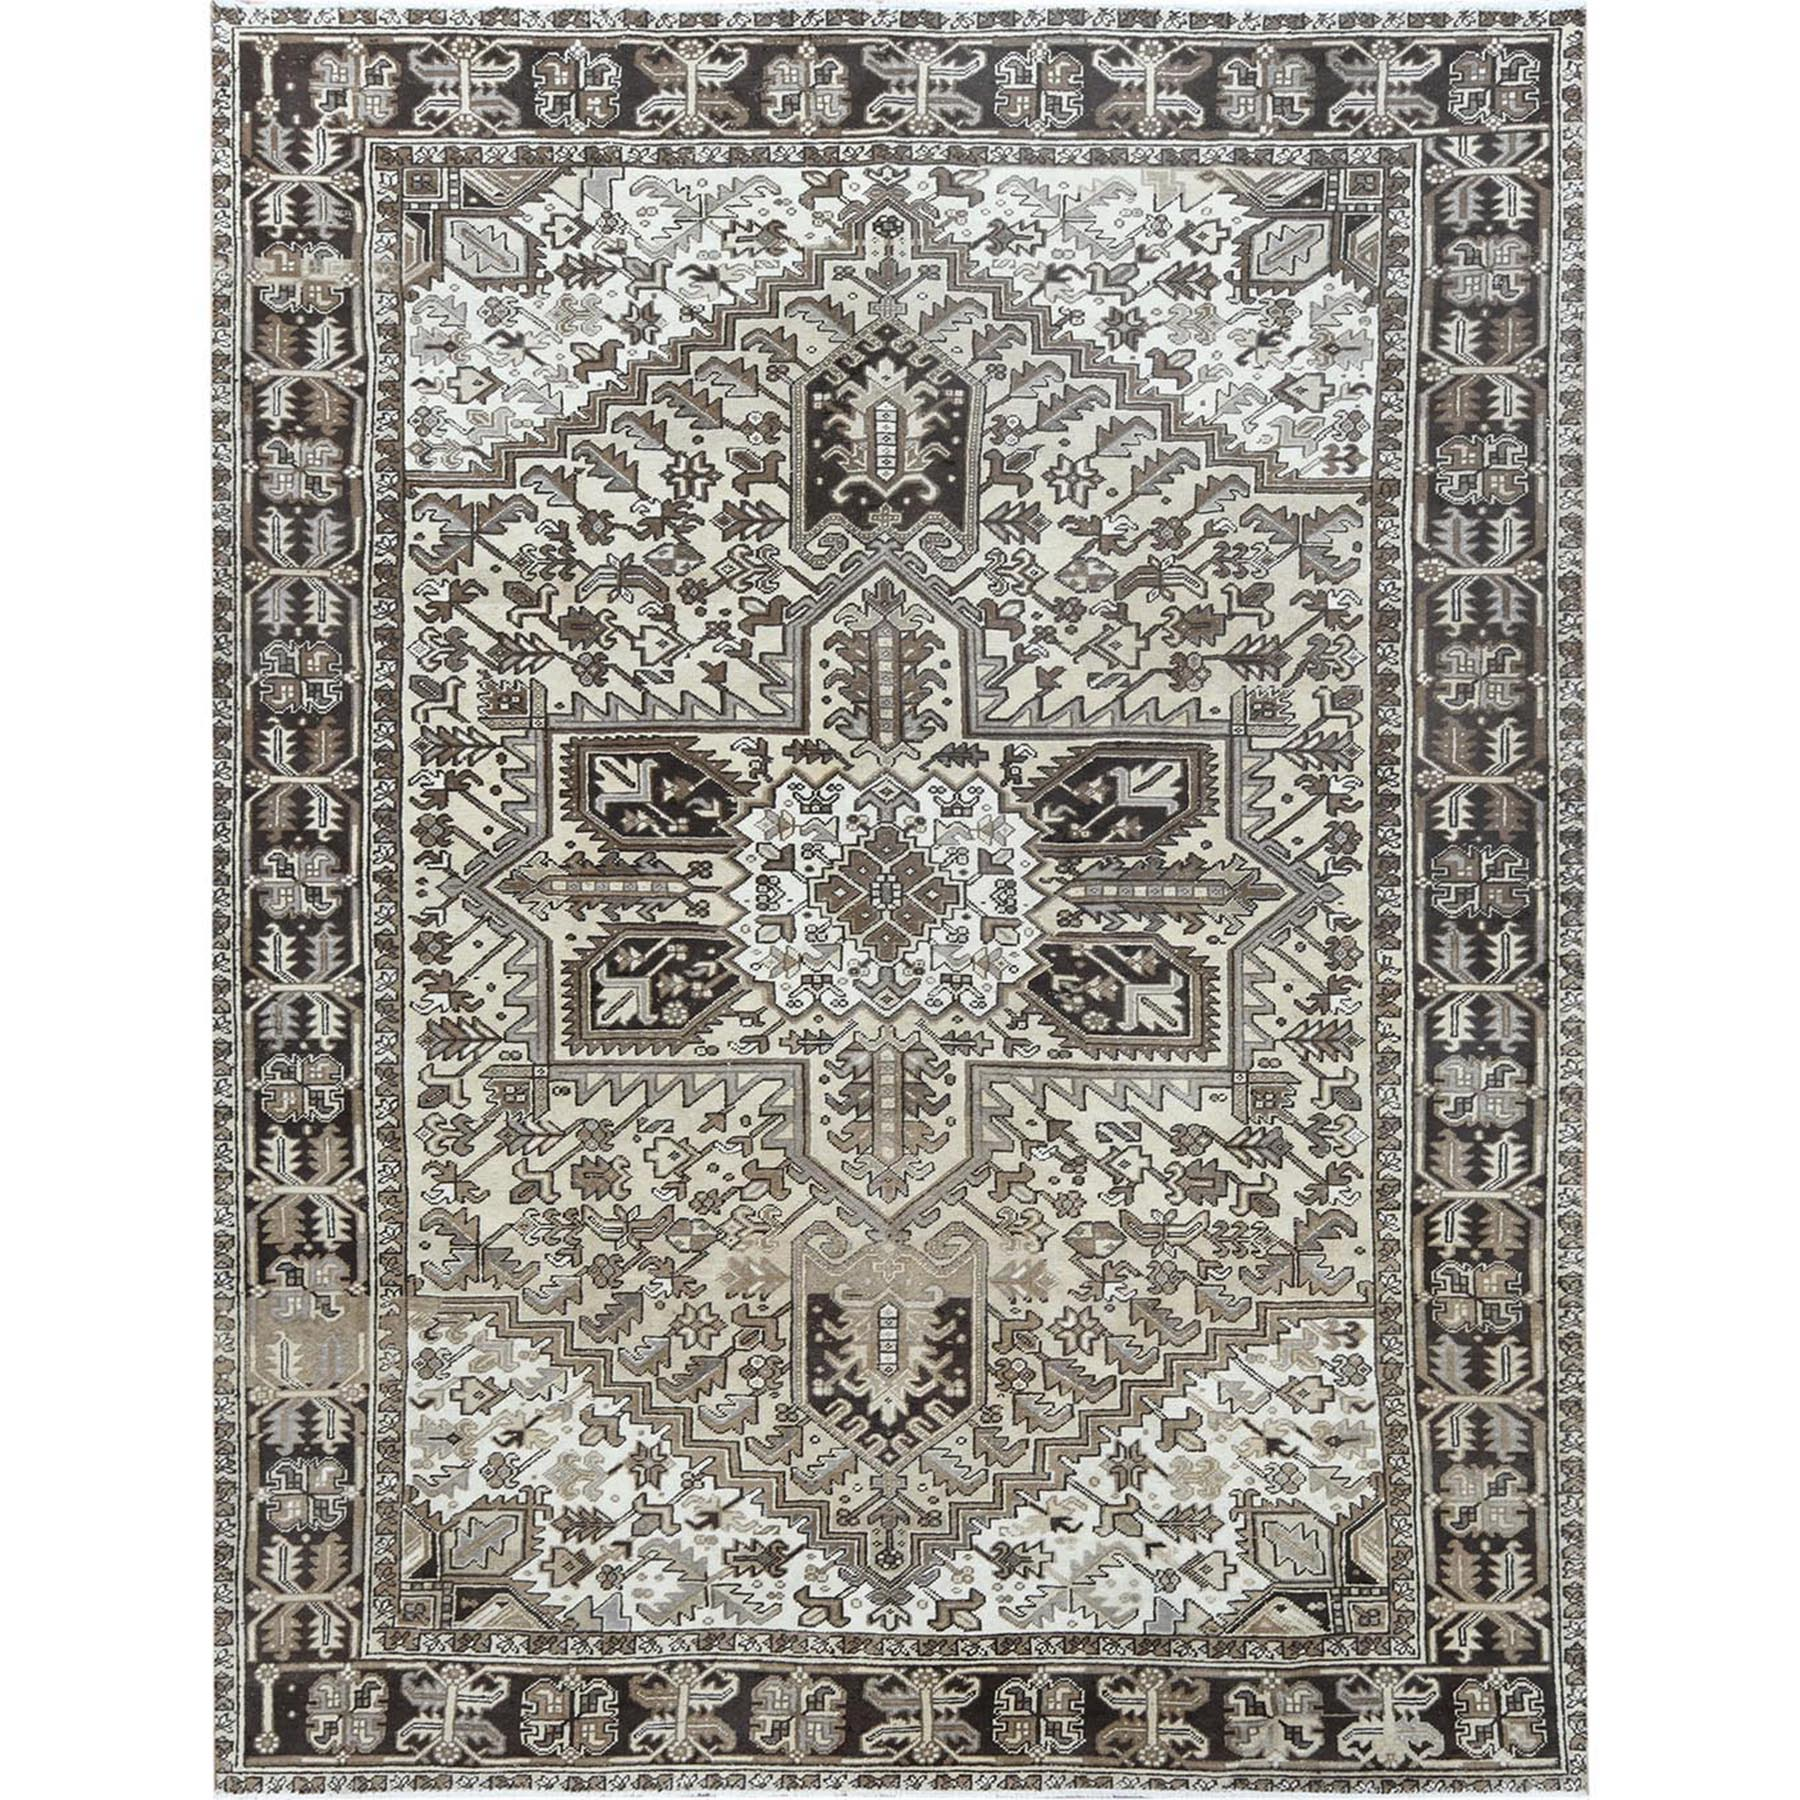 8'x11' Hand Knotted Washed Out Ivory Persian Heriz Vintage Worn Down Organic Wool Oriental Rug